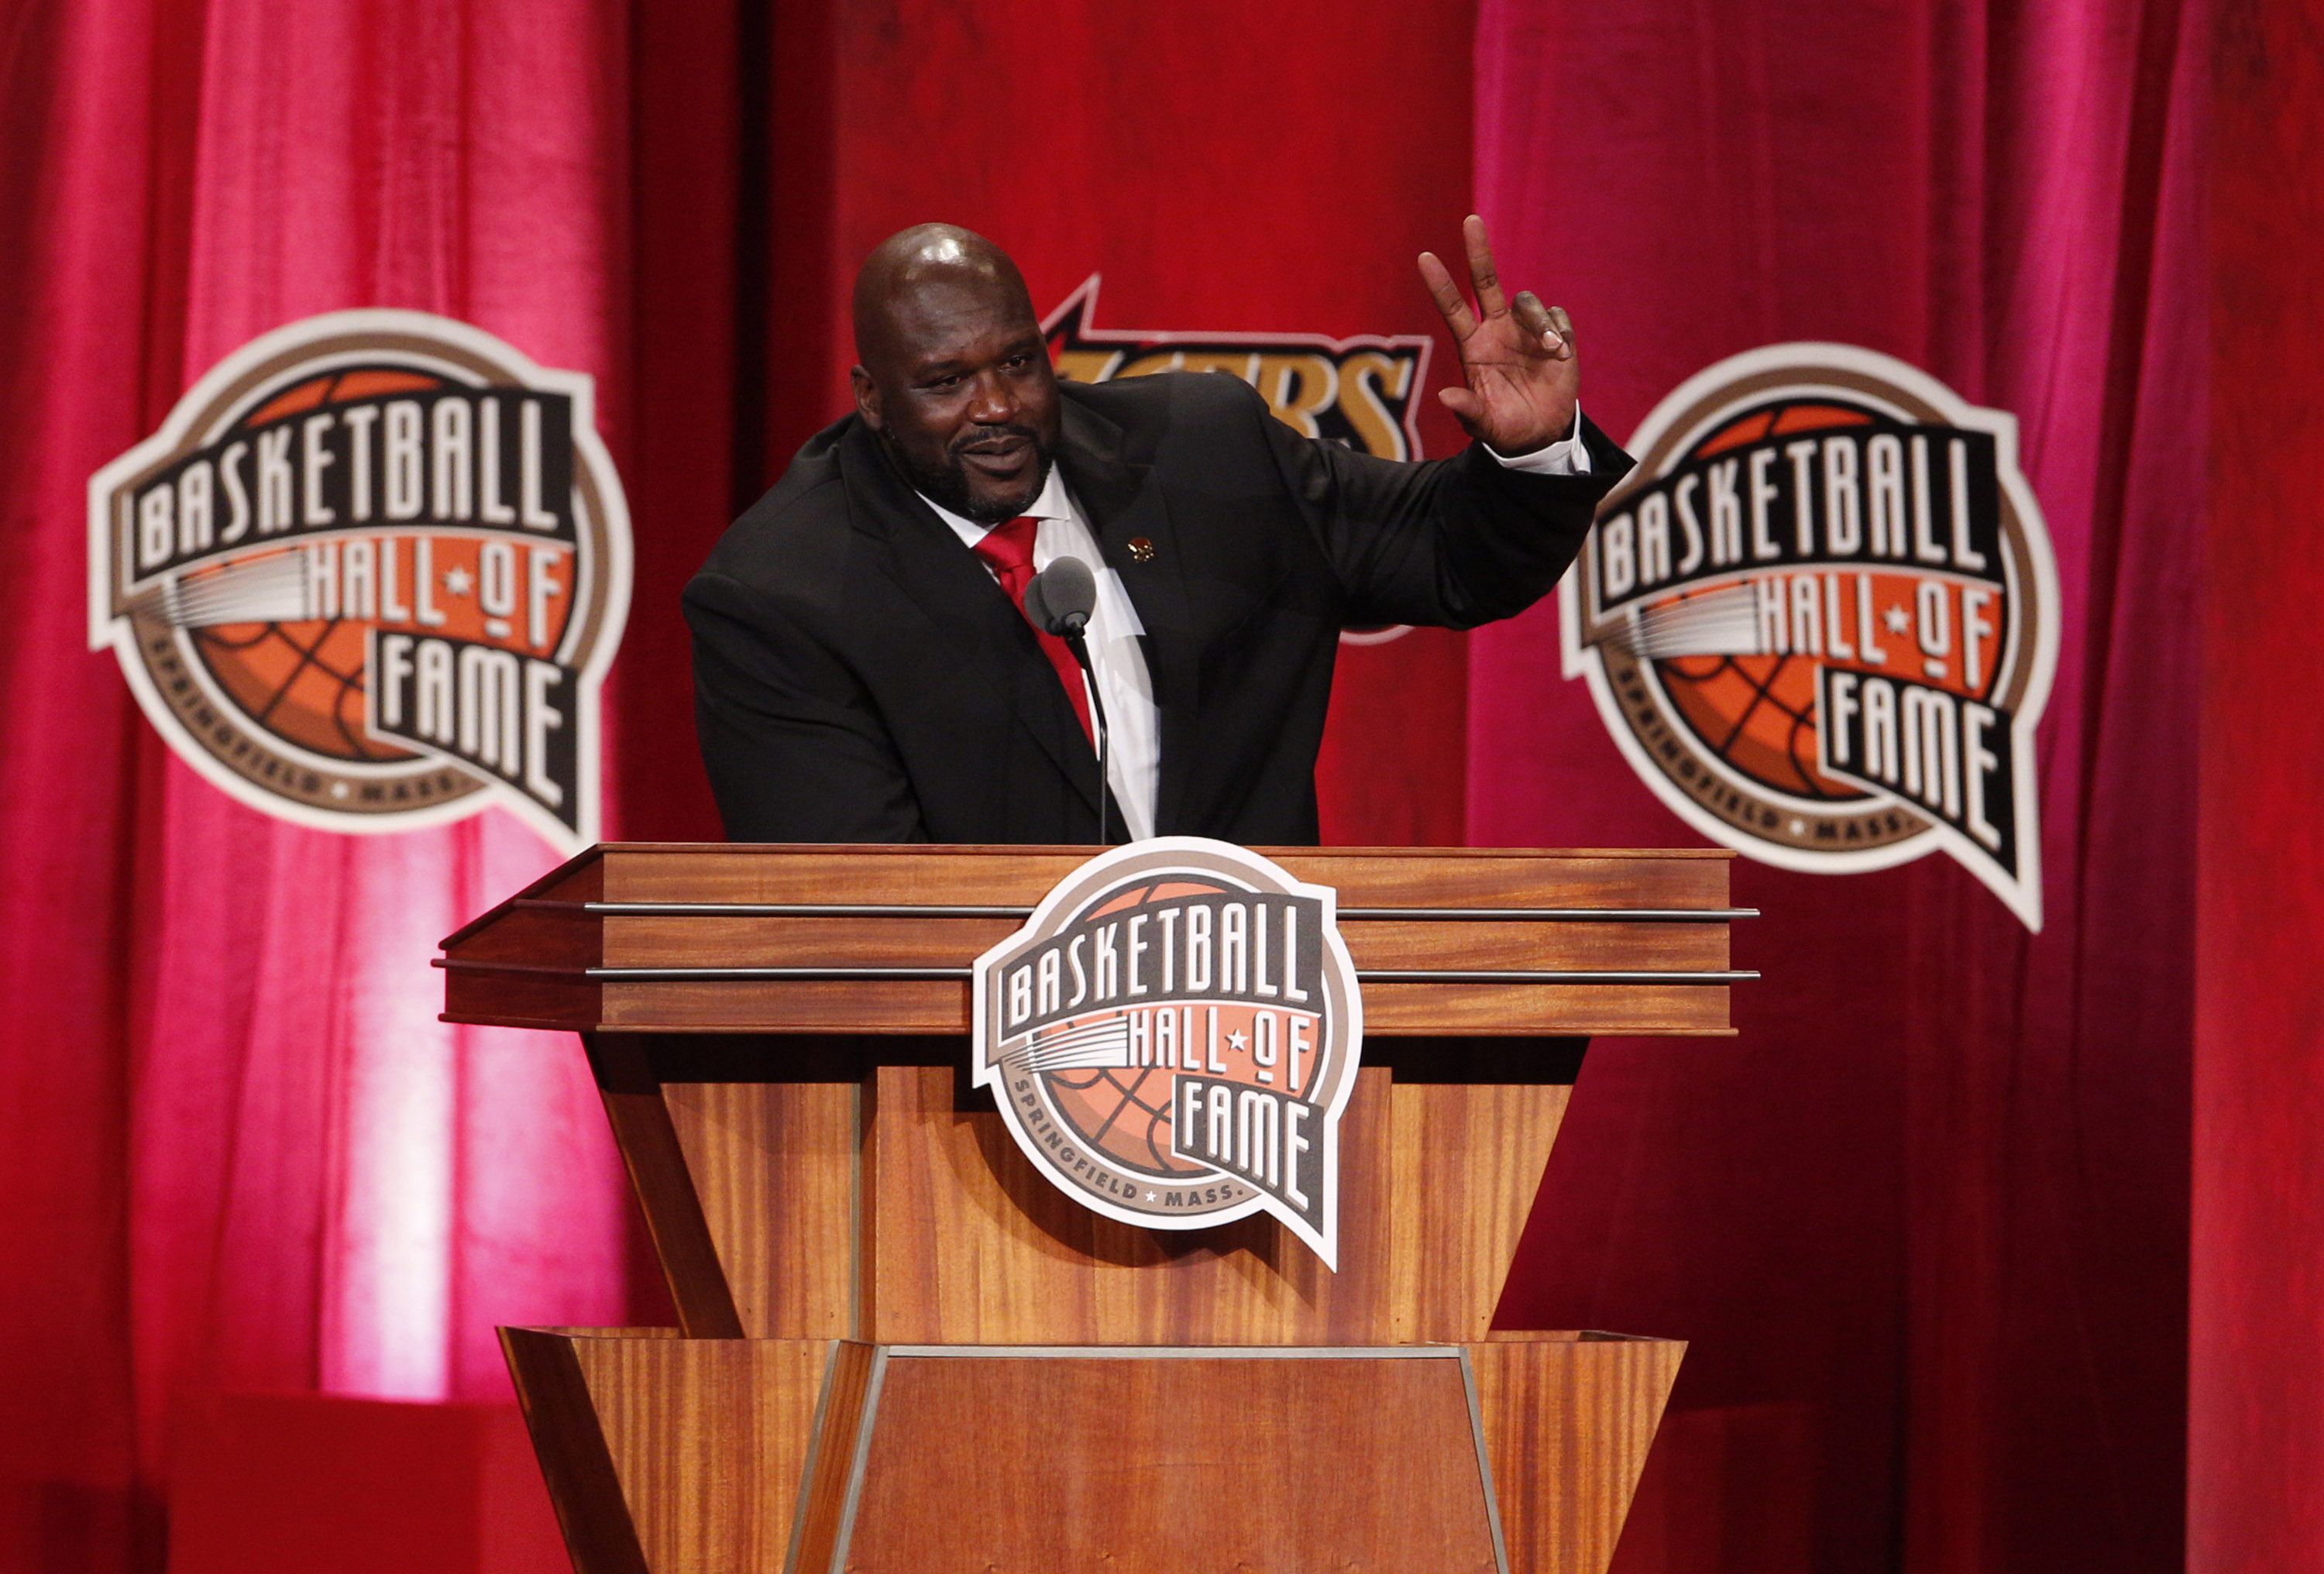 9530150-basketball-hall-of-fame-enshrinement